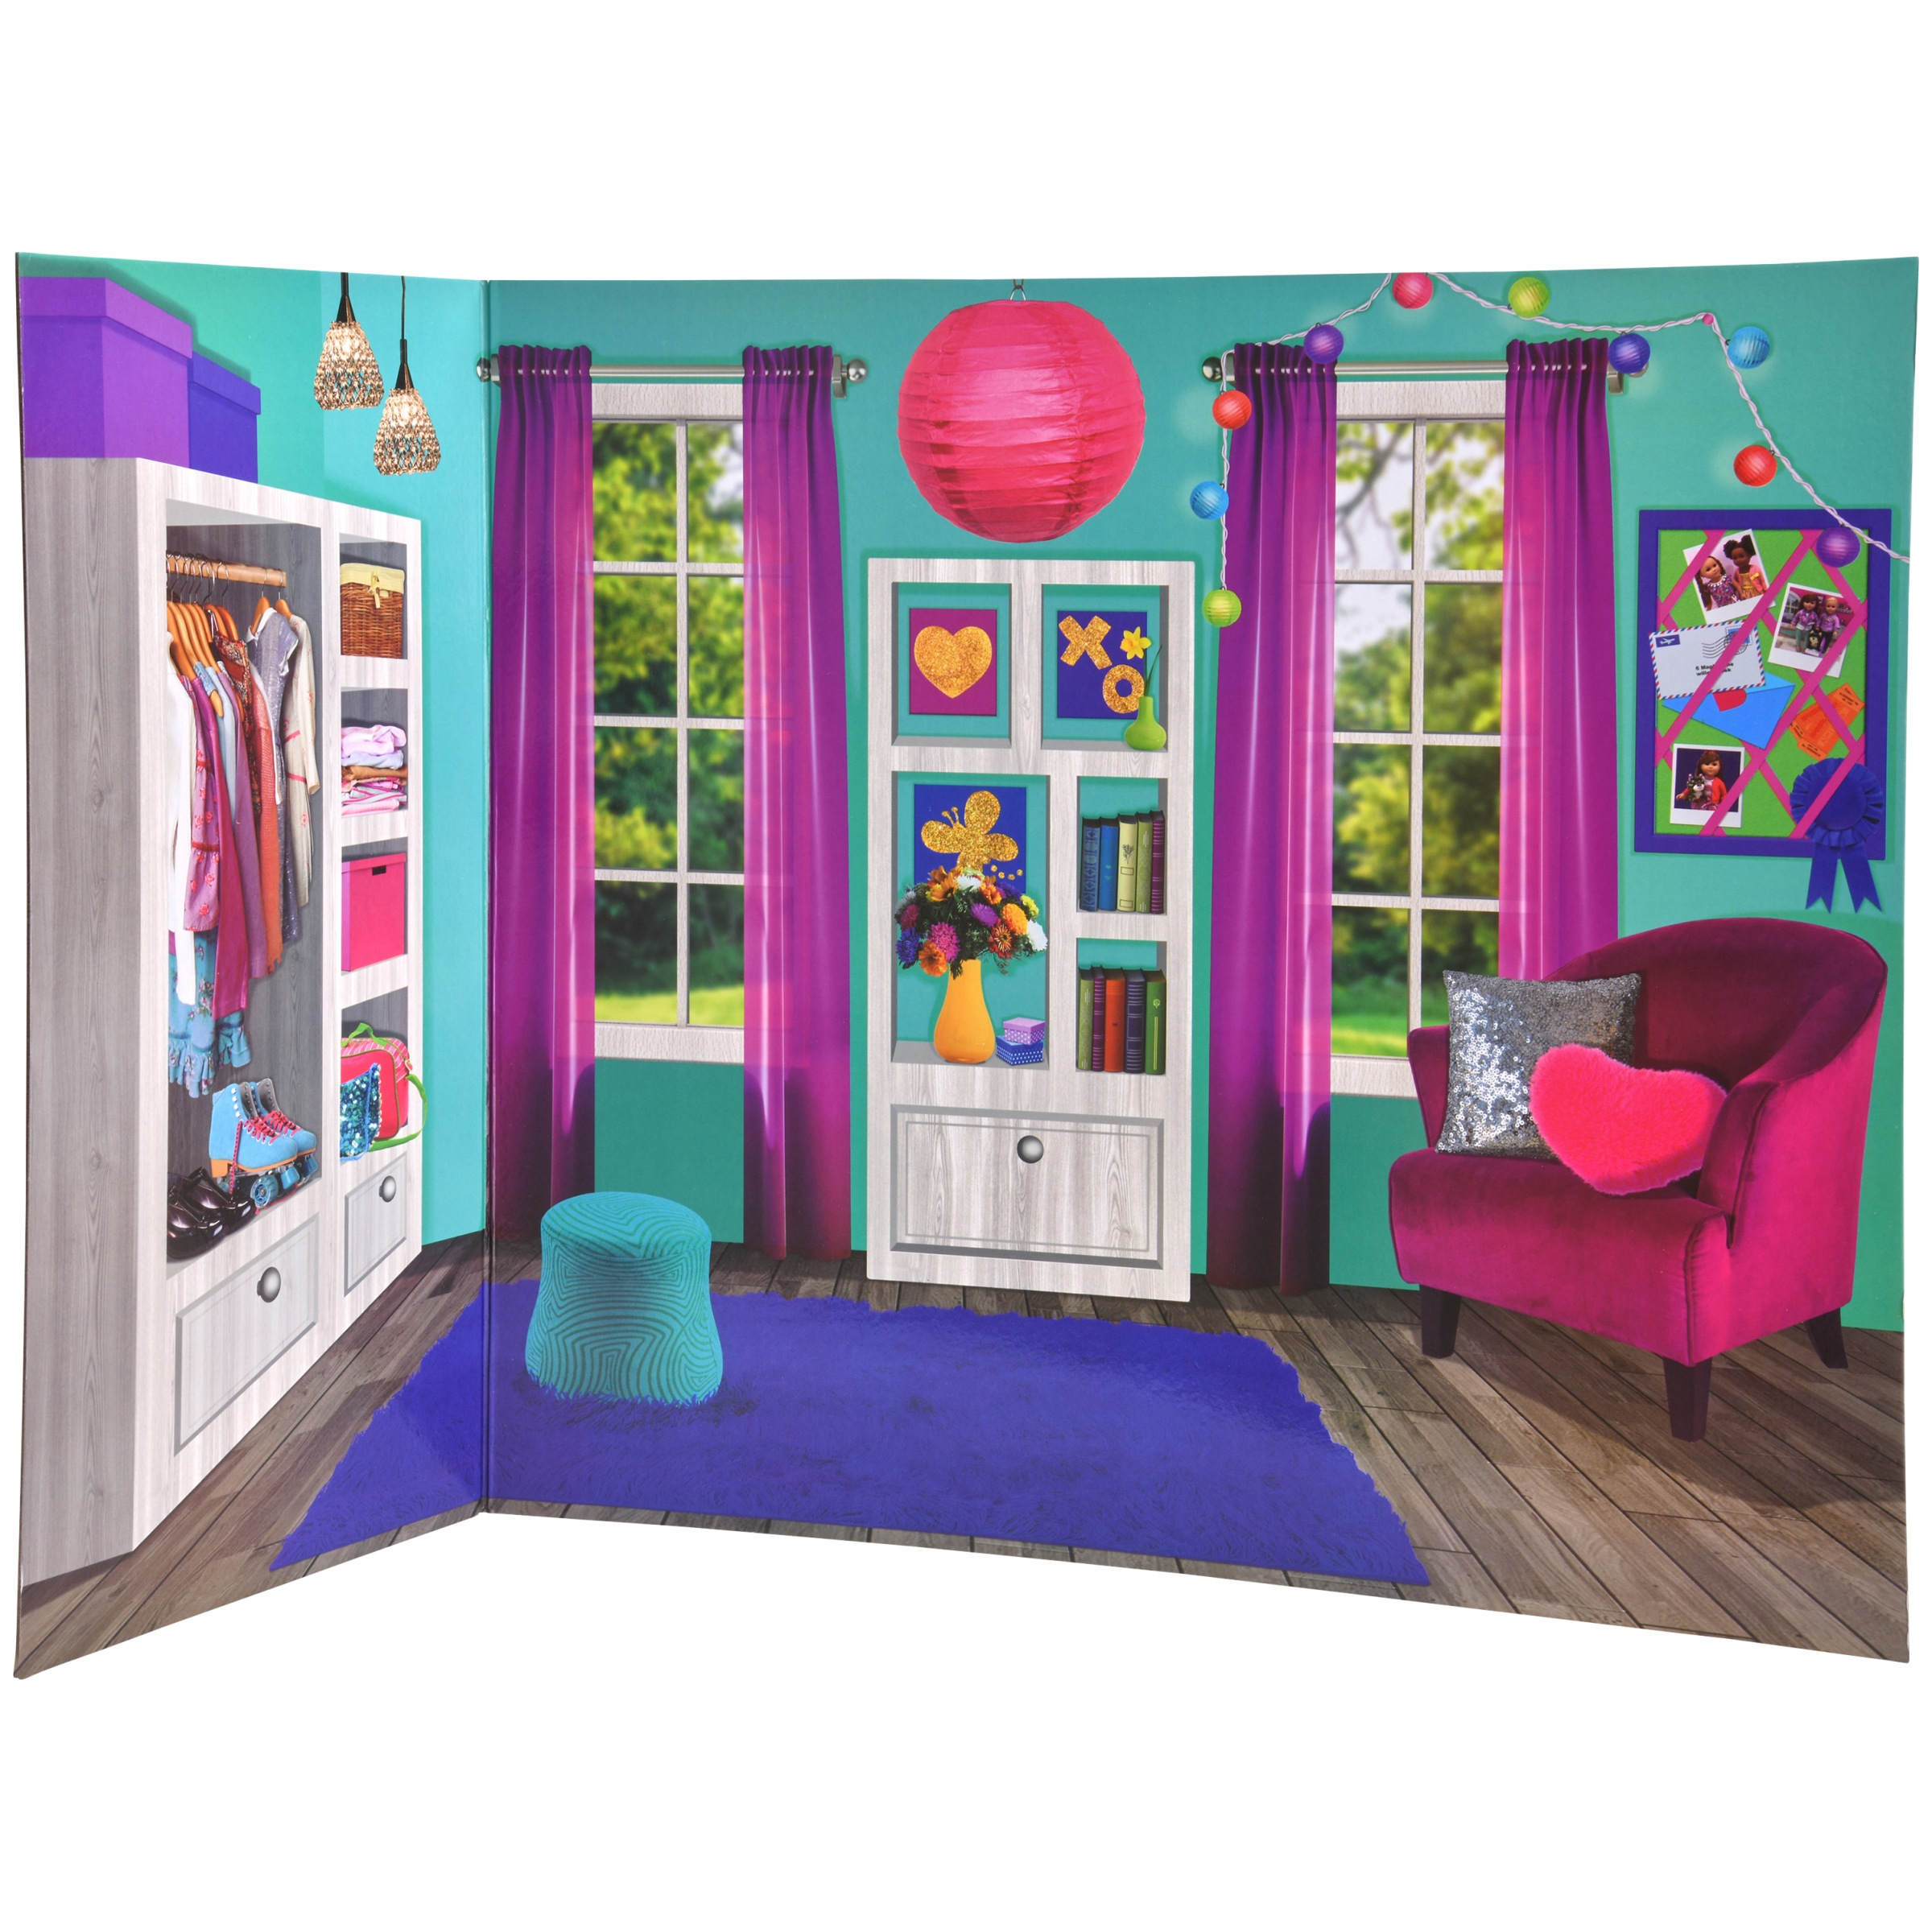 My Life As Reversible Background for Use with Dolls, Bedroom & Bathroom